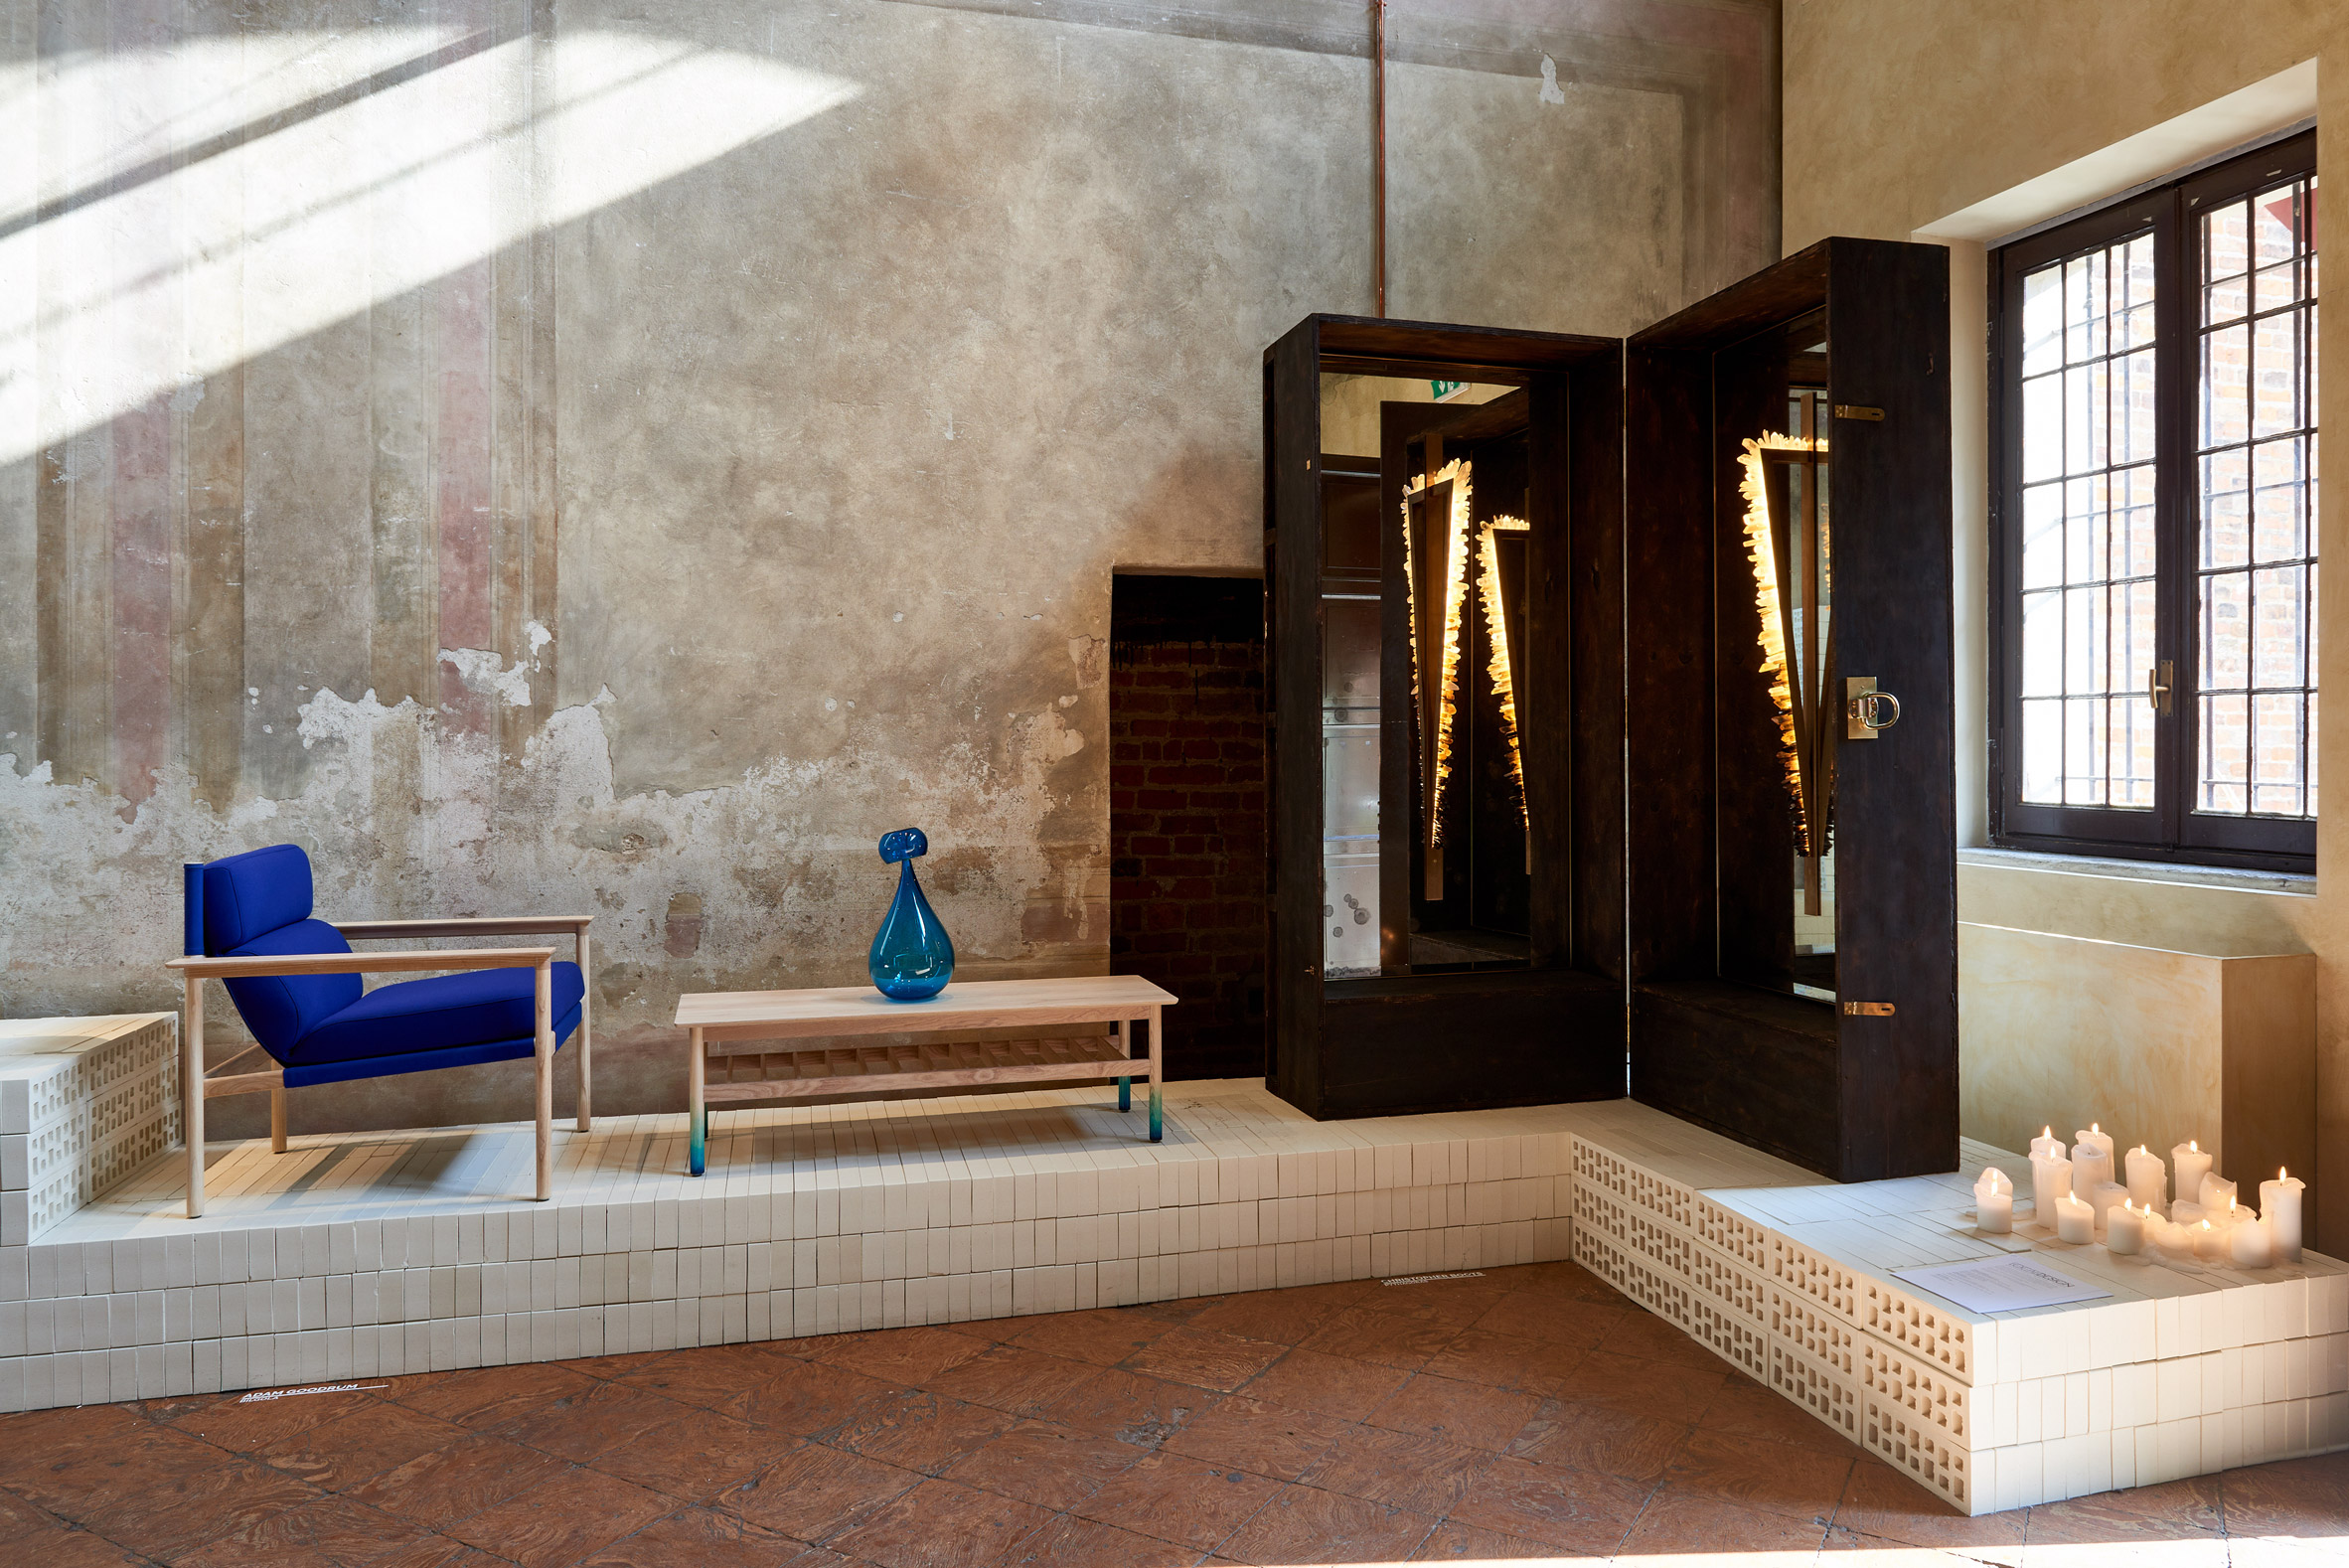 milan-local-design-australian-designers-lighting-furniture_dezeen_2364_col_8